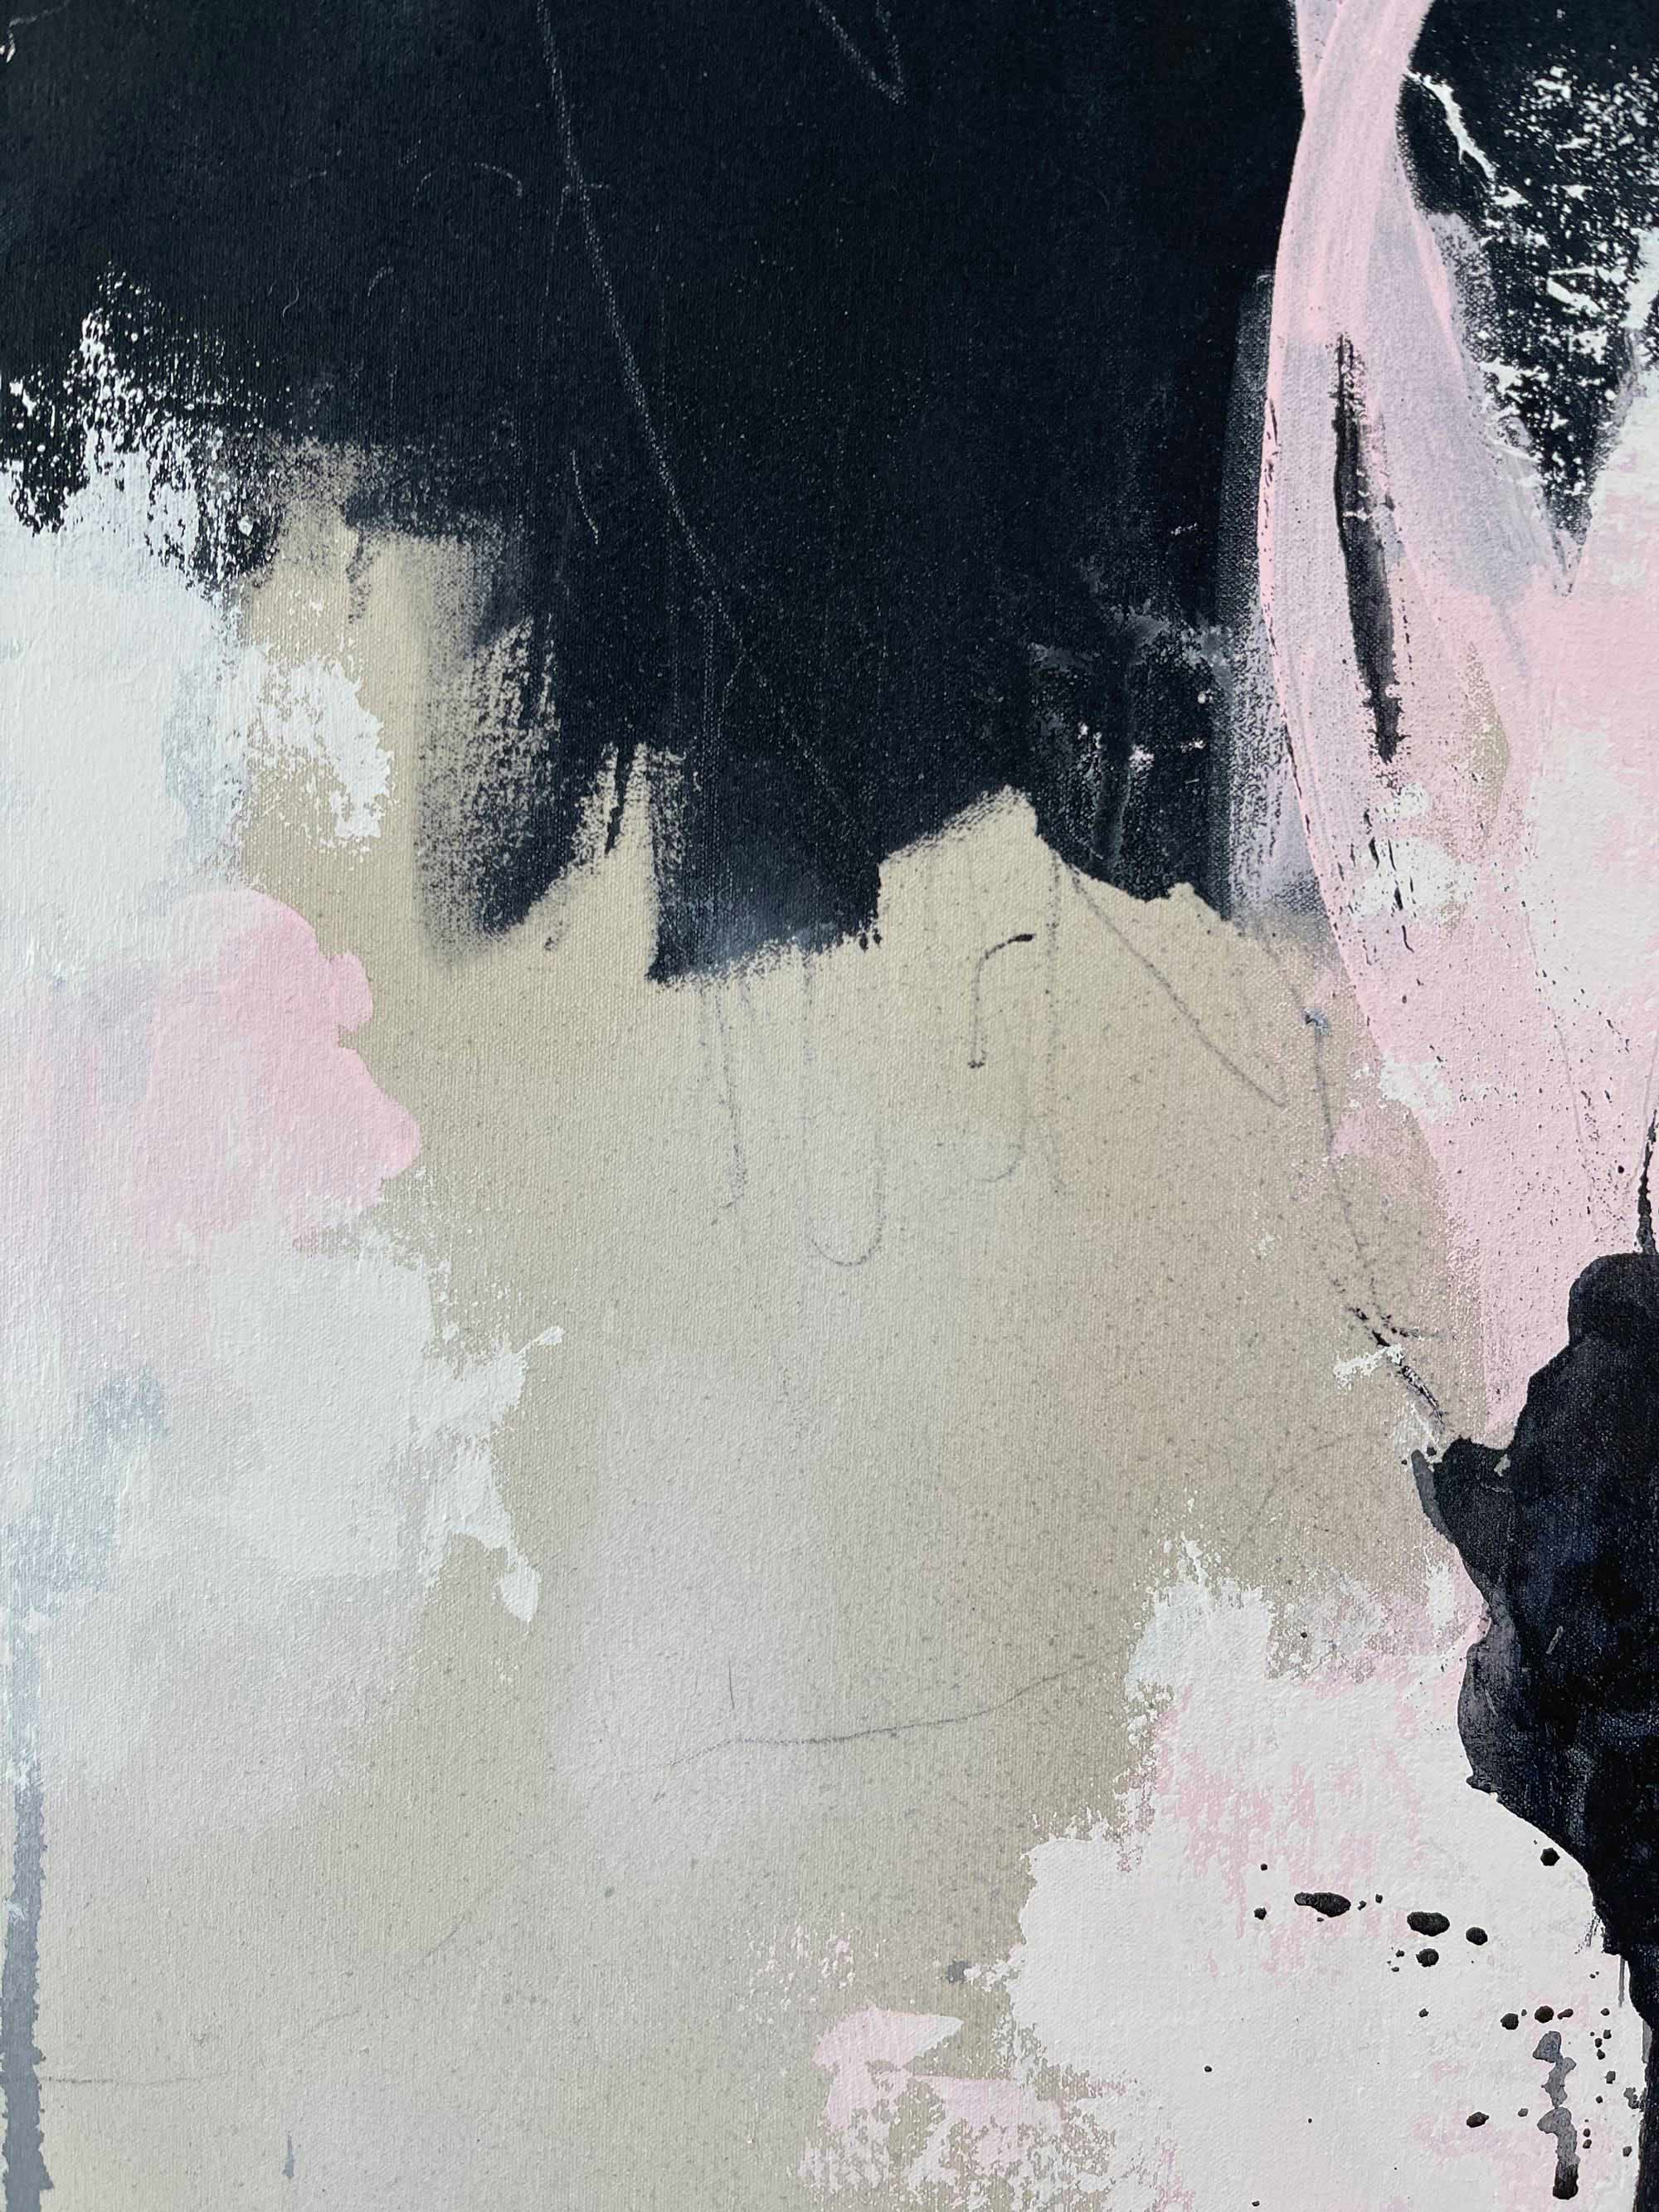 On The Sidelines - Detail Close Up 2 - Original Abstract Painting By Paige Ring